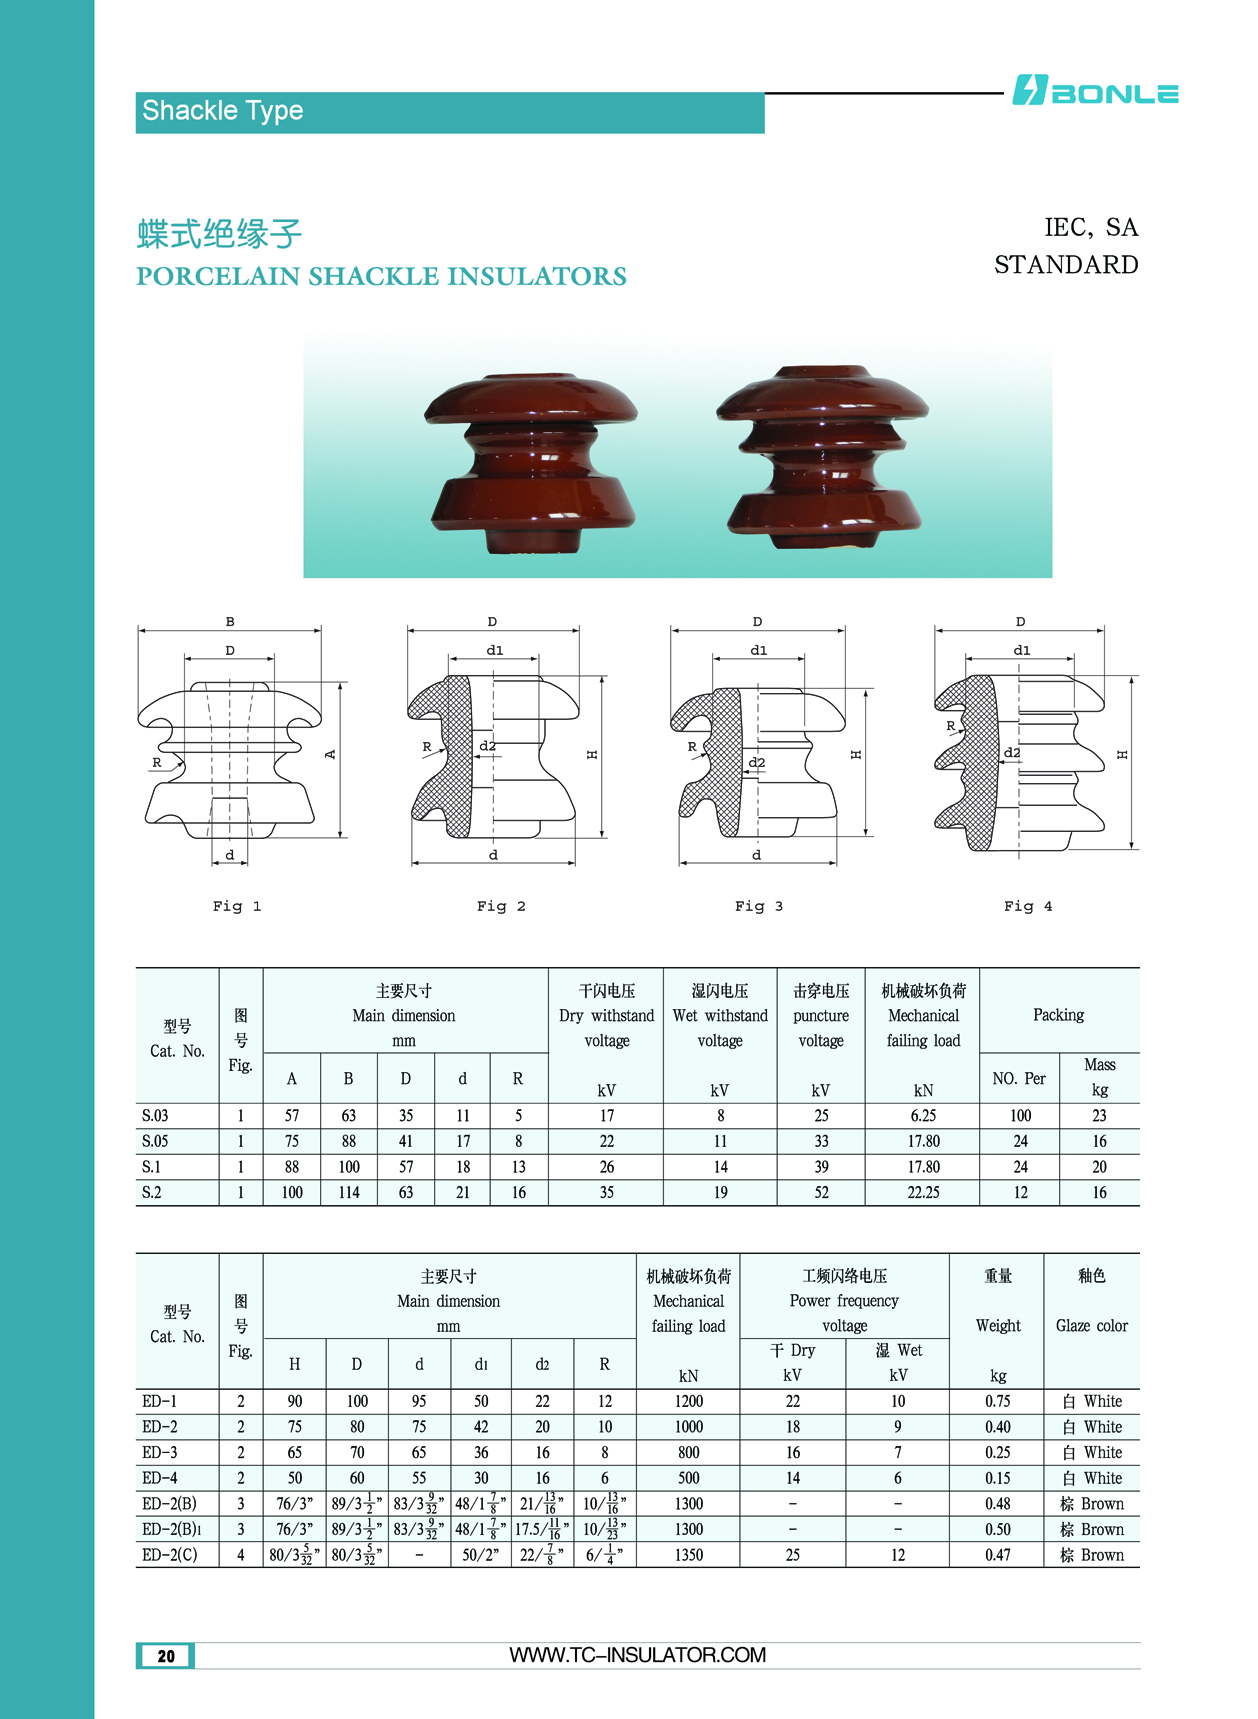 Porcelain Shackle Insulators IEC and SA standard